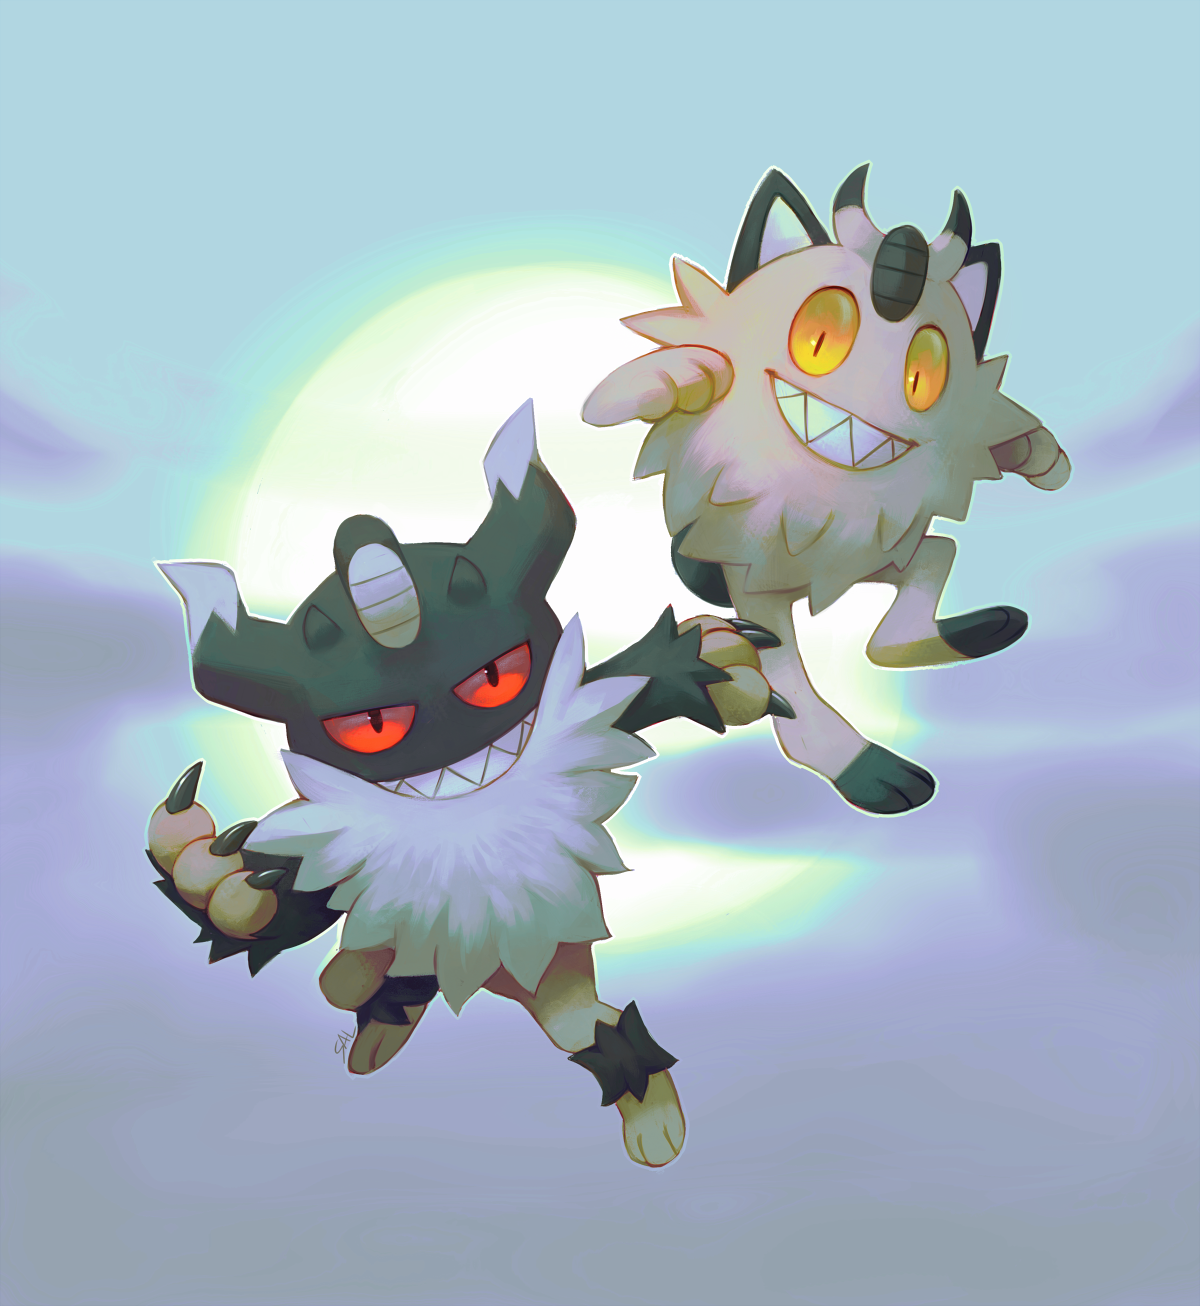 Meowth And Perrserker By Salanchu On Deviantart Pokemon Meowth Persian Pokemon Pokemon Drawings